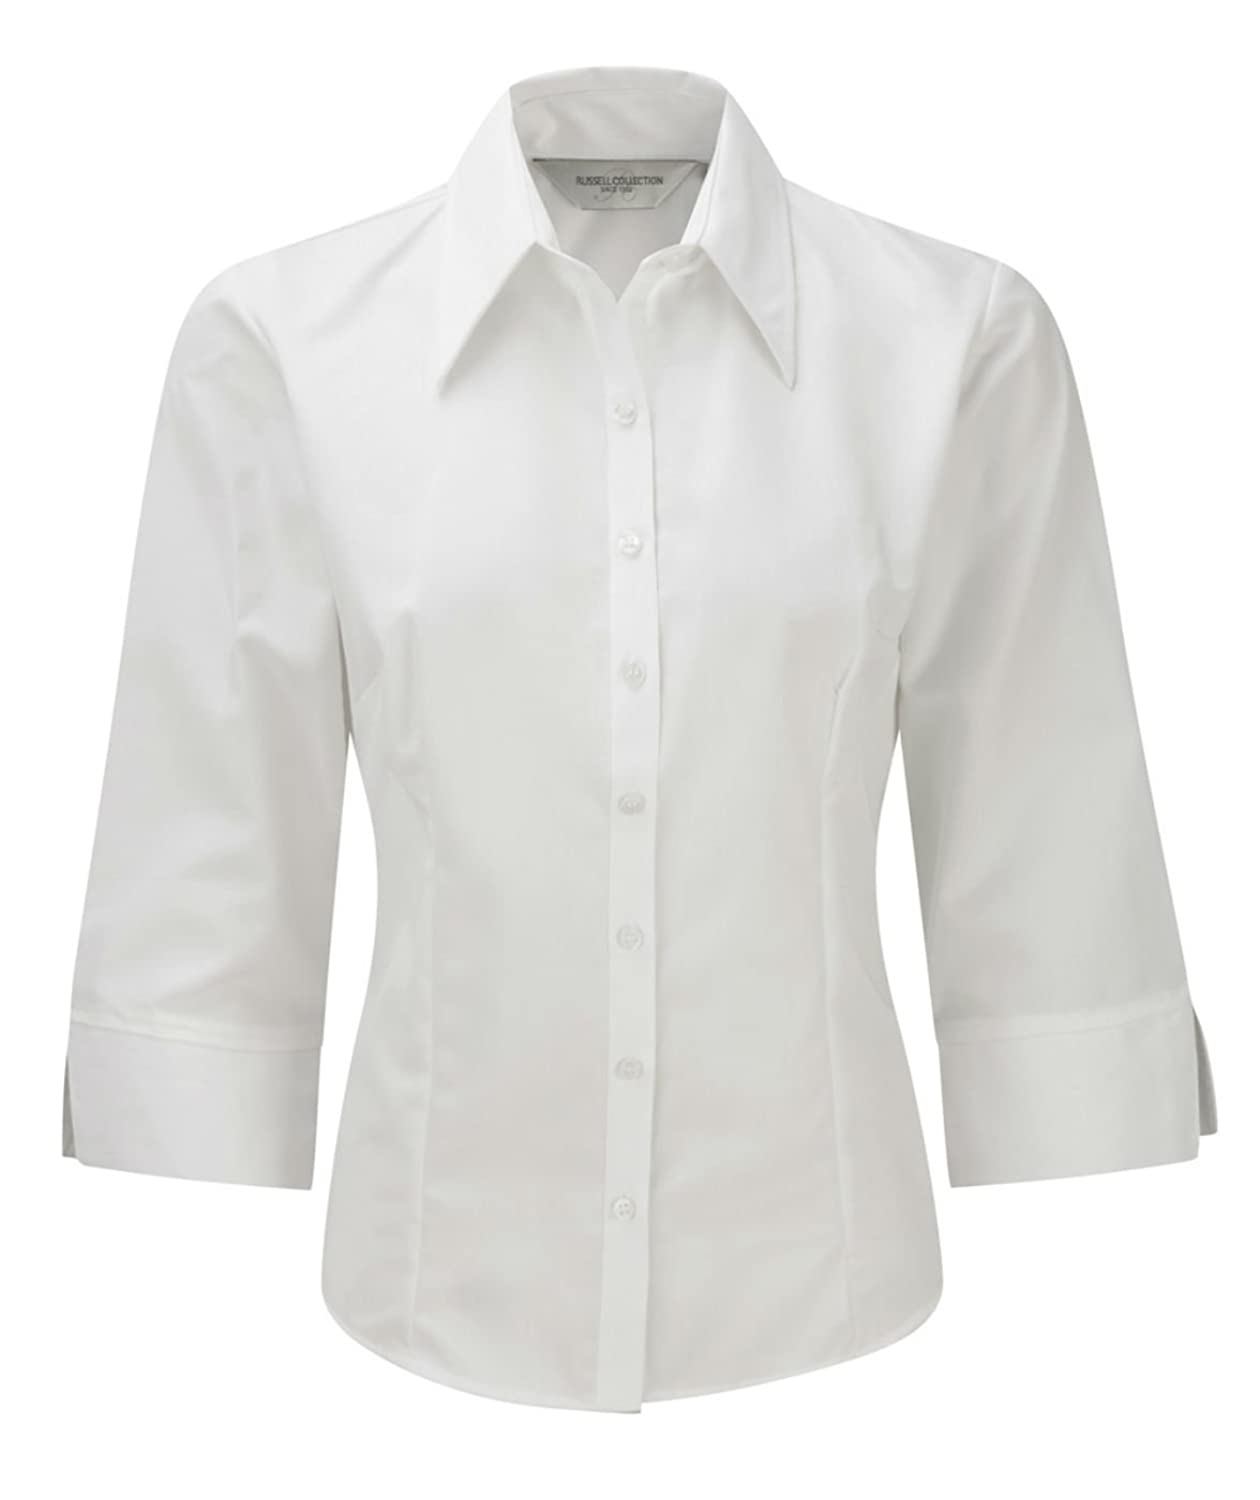 Russell Ladies 3/4 Sleeve Tencel Fitted Shirt Blouse